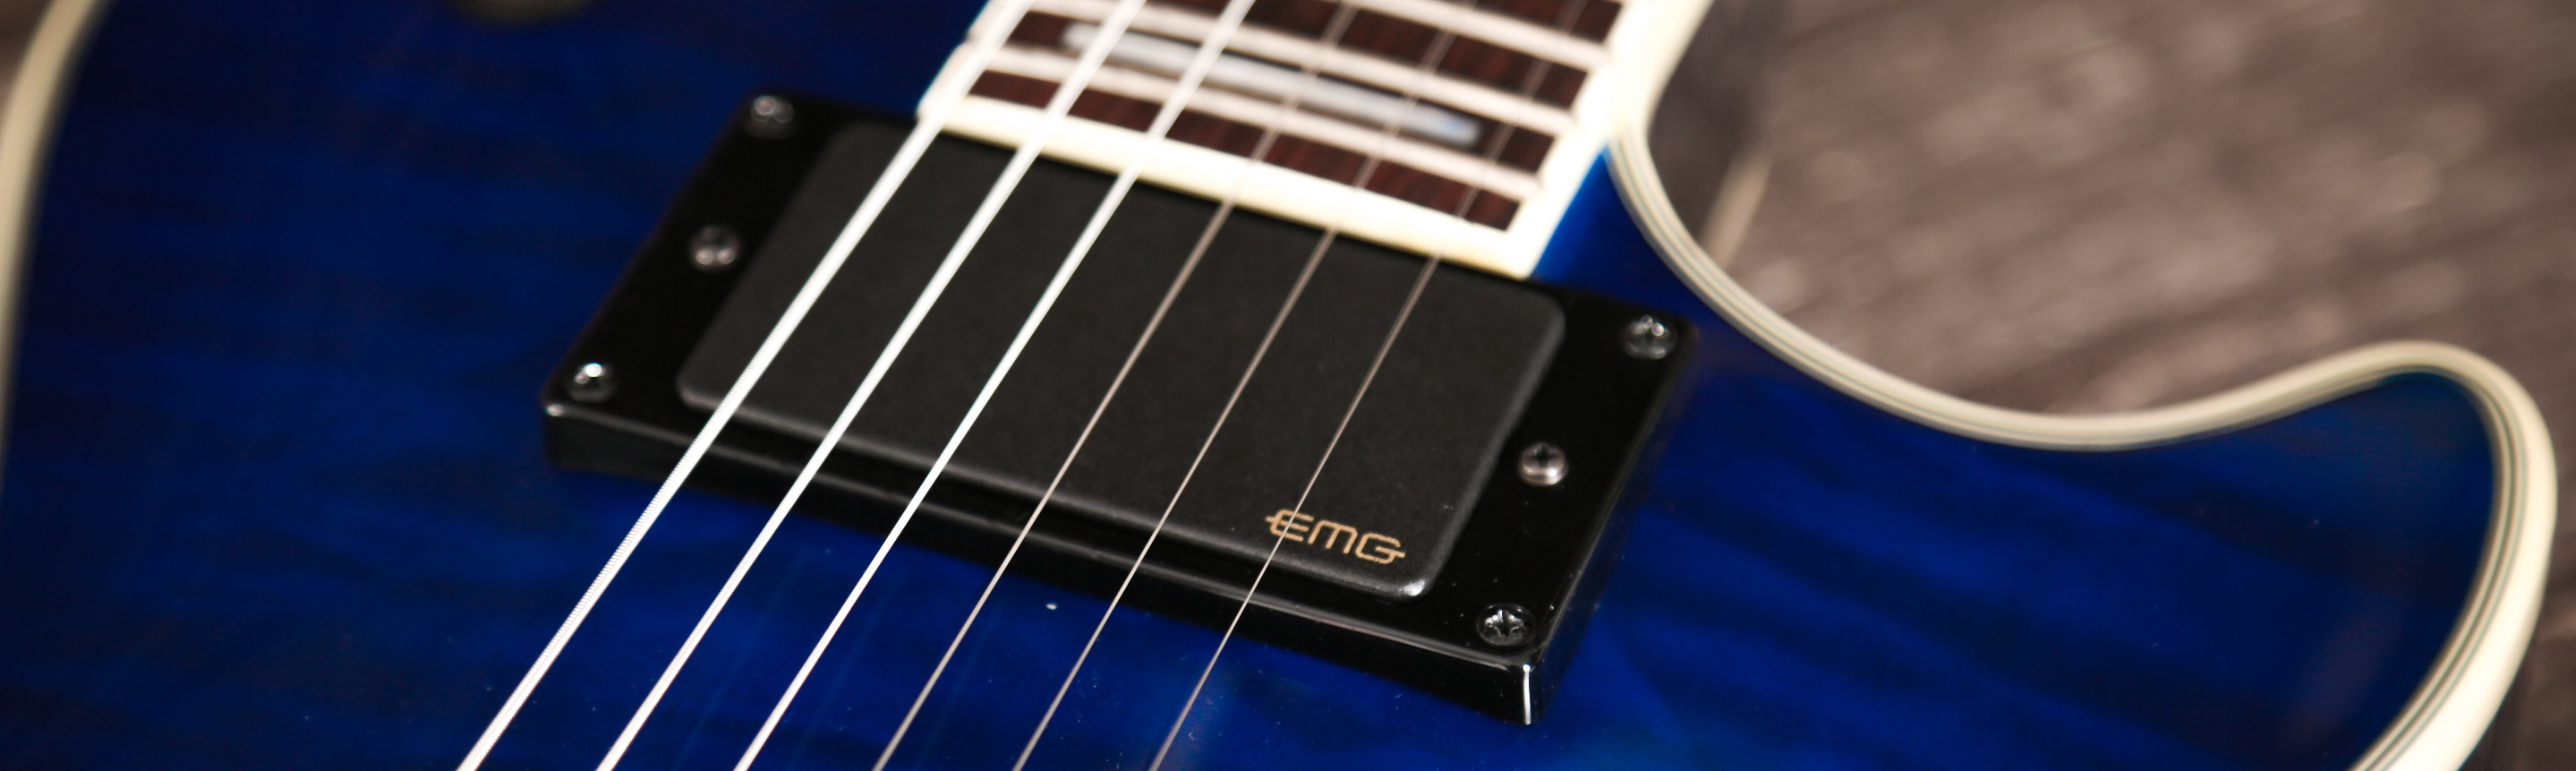 EMG Pickups - Andertons Music Co.